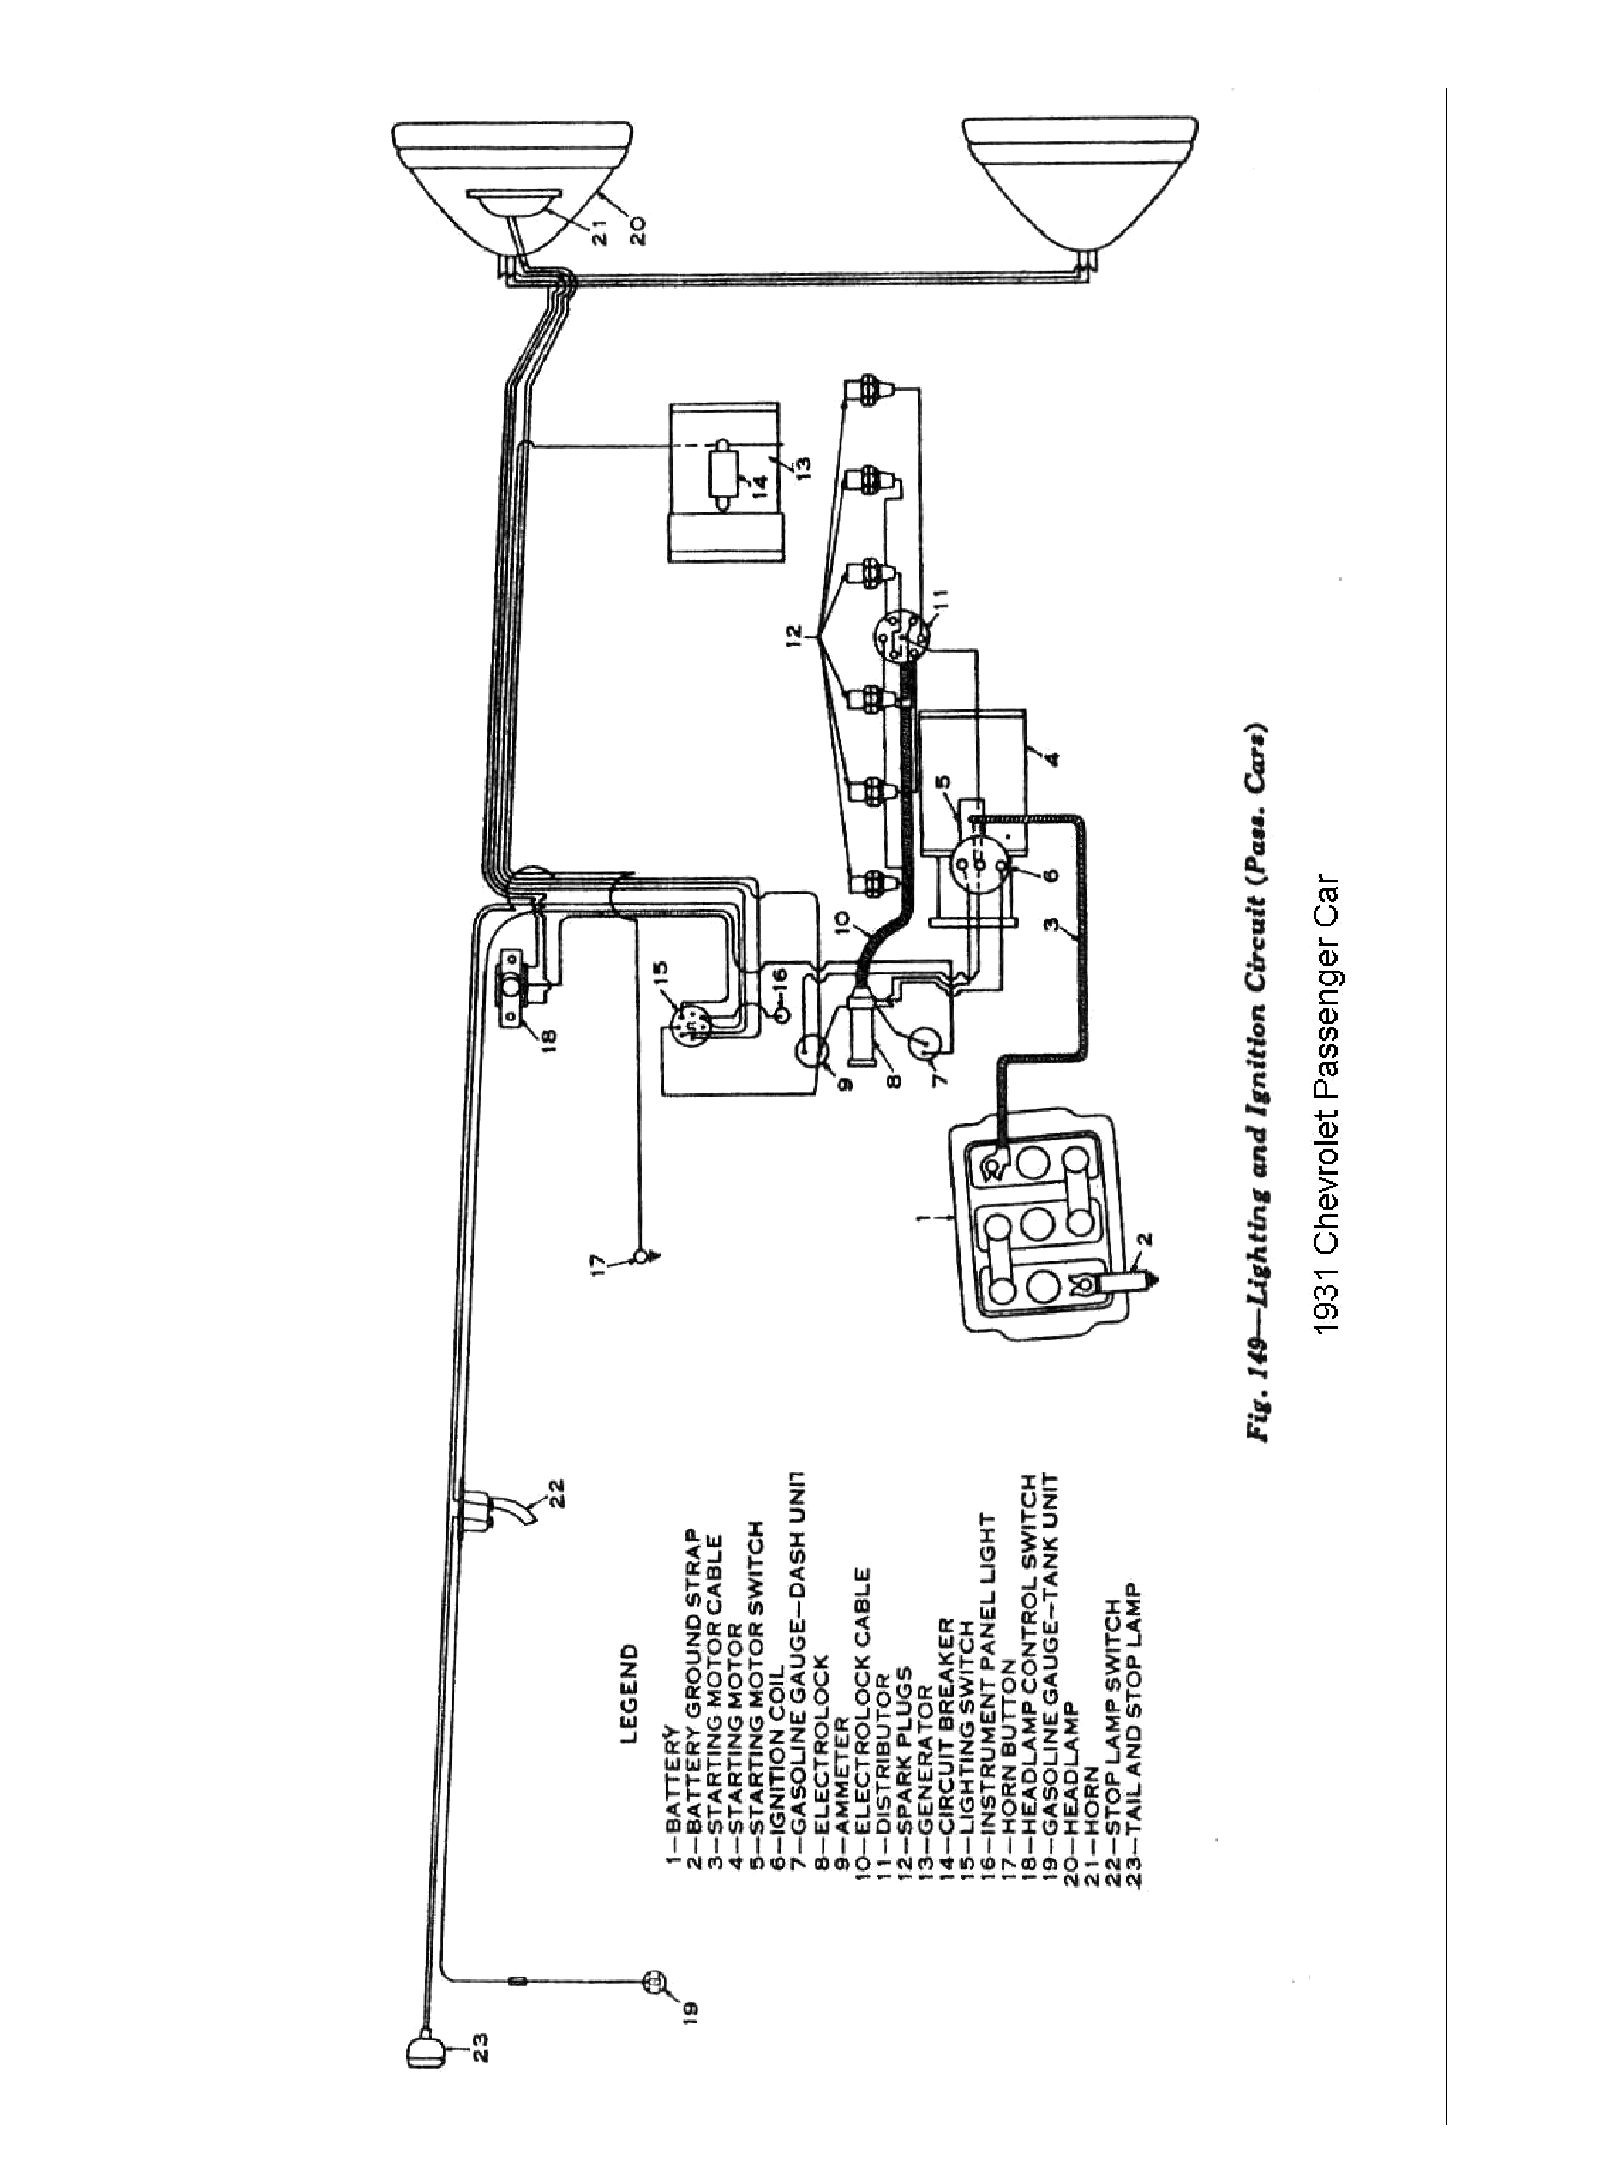 hight resolution of jeep wrangler engine diagram wiring diagram for ac unit thermostat 97 jeep grand cherokee engine diagram